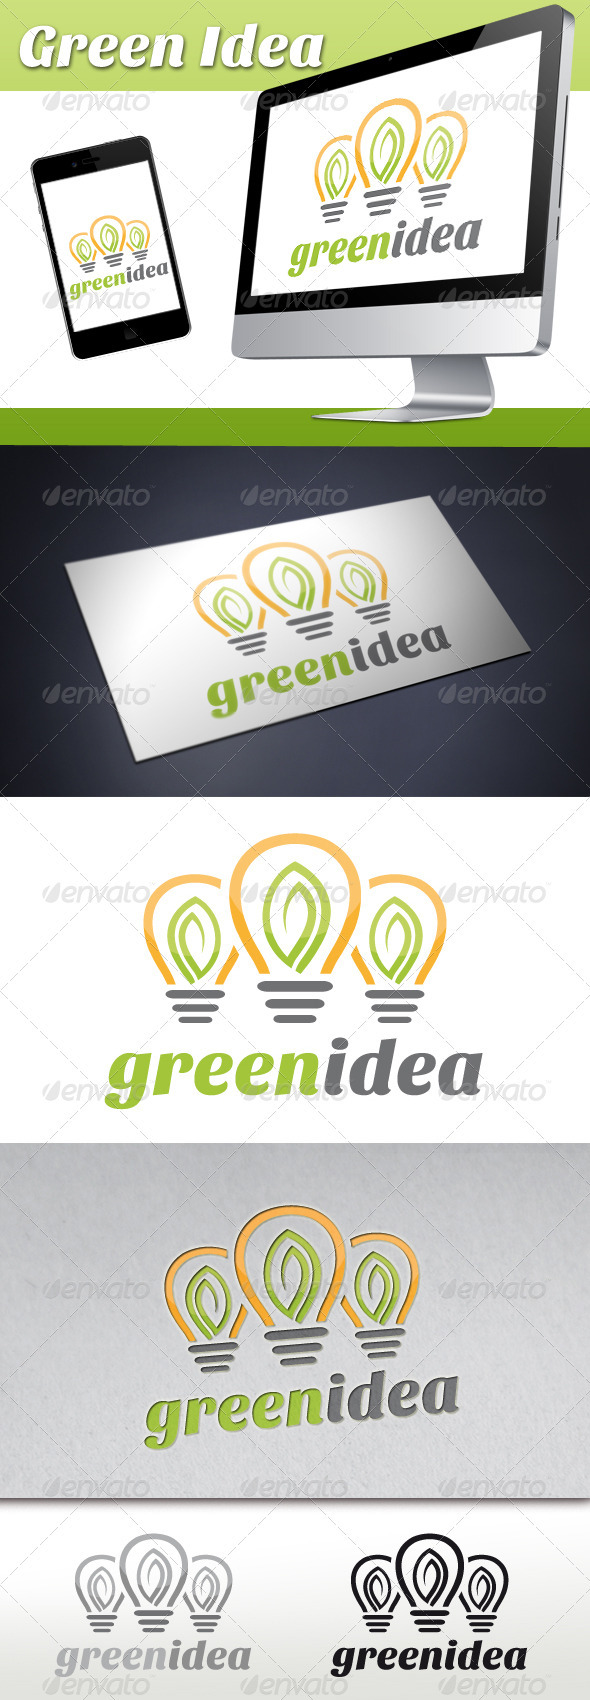 Green Idea Logo